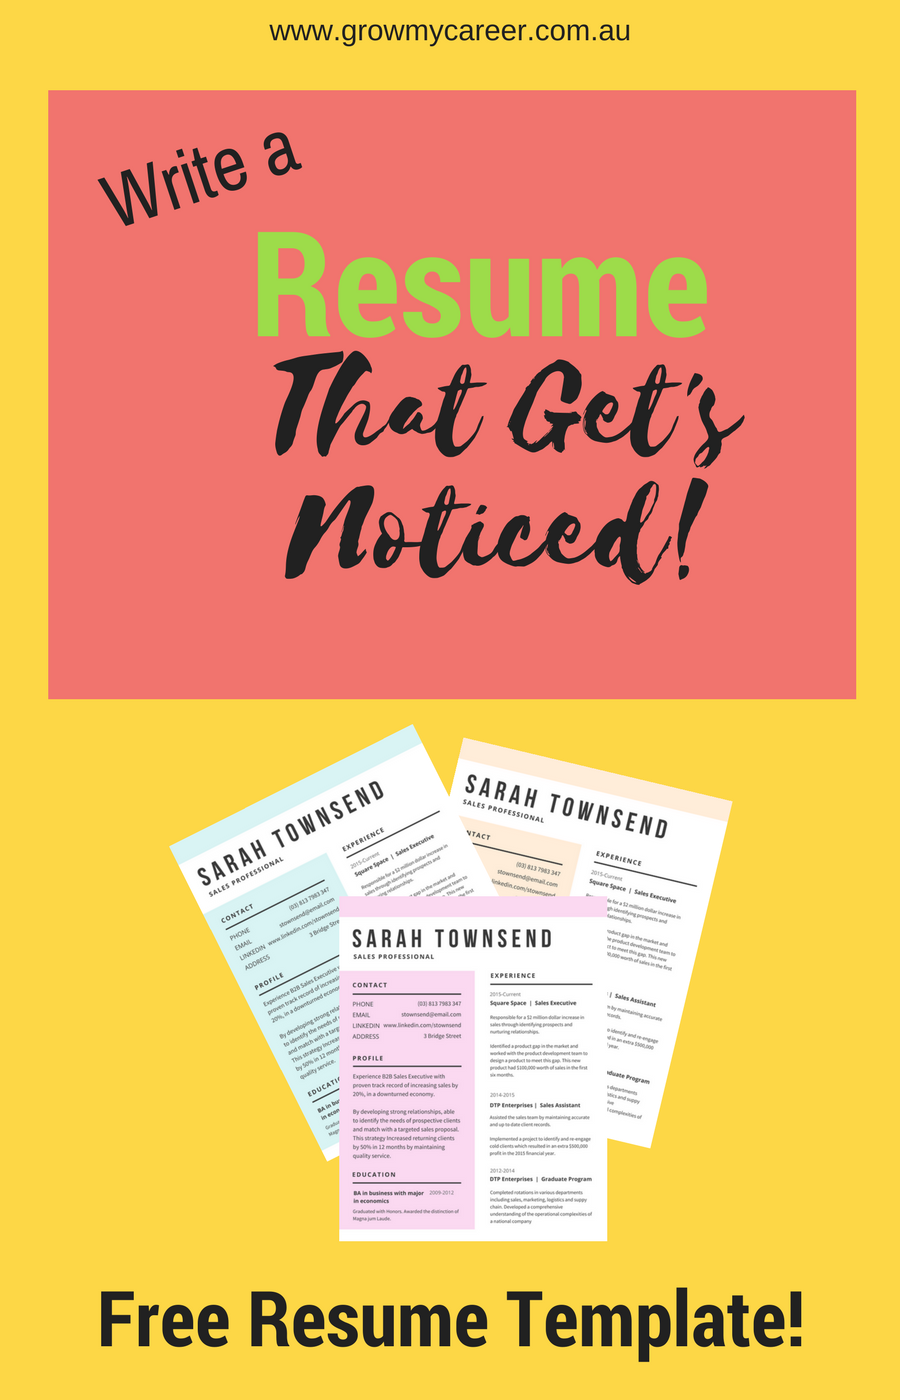 Free Resume Template Get A Job Interview With This Professional